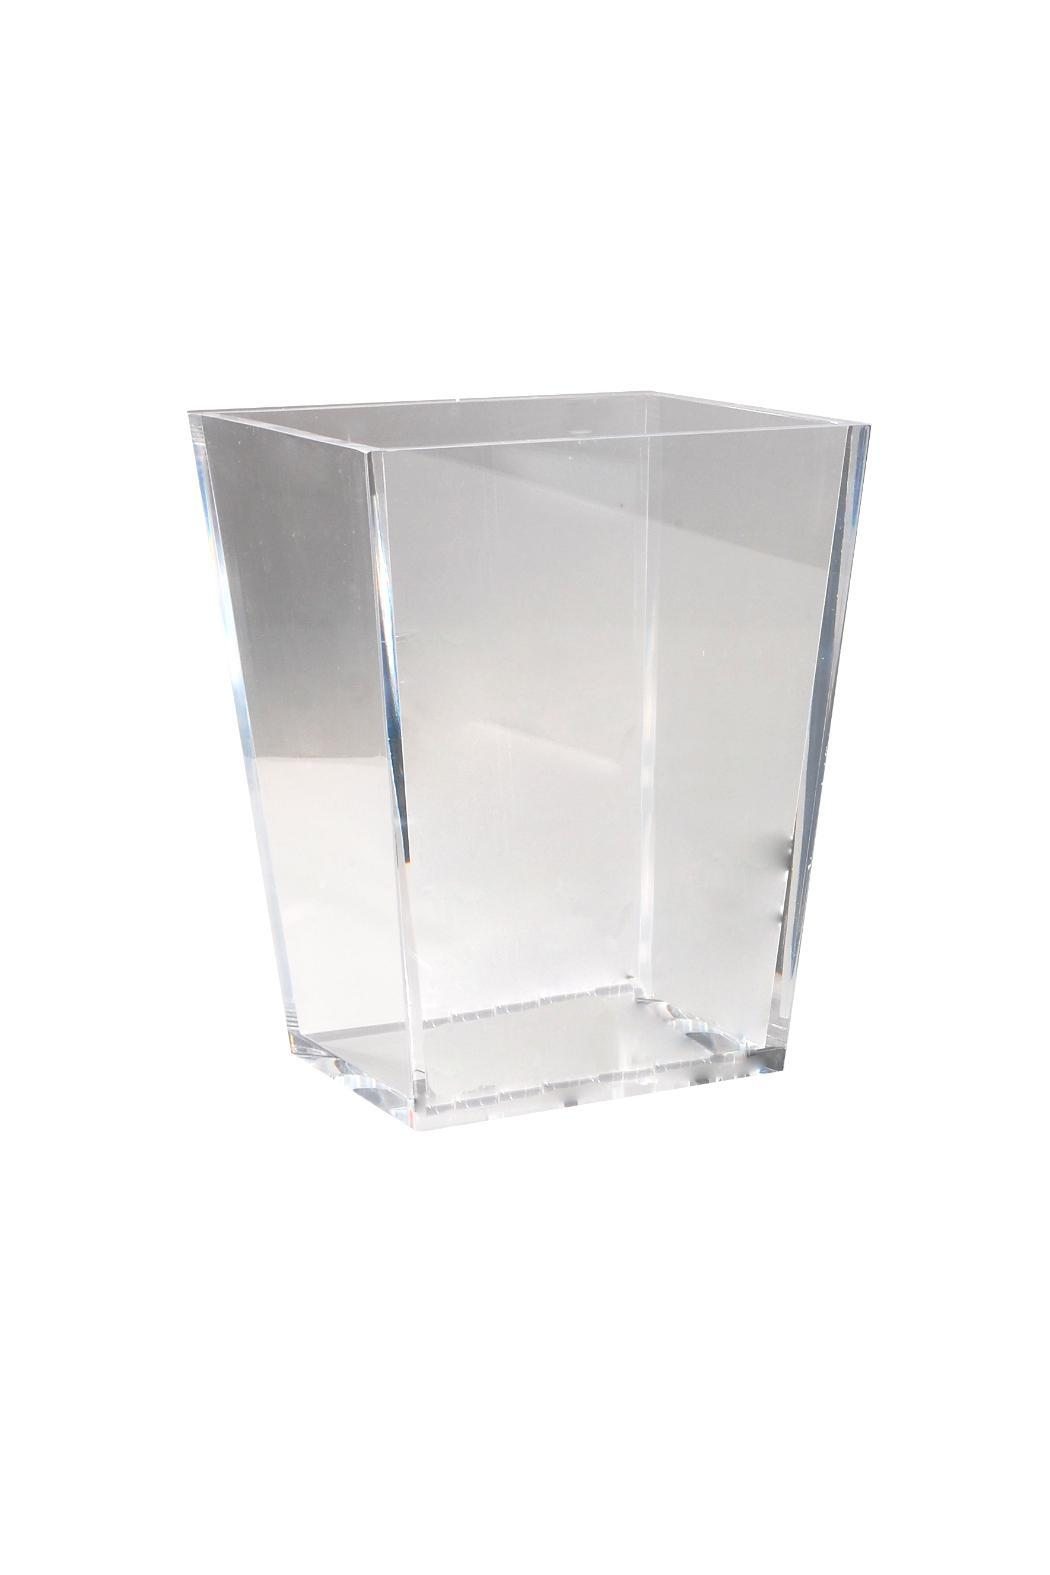 mike & ally clear lucite wastebasket from texascasa di lino